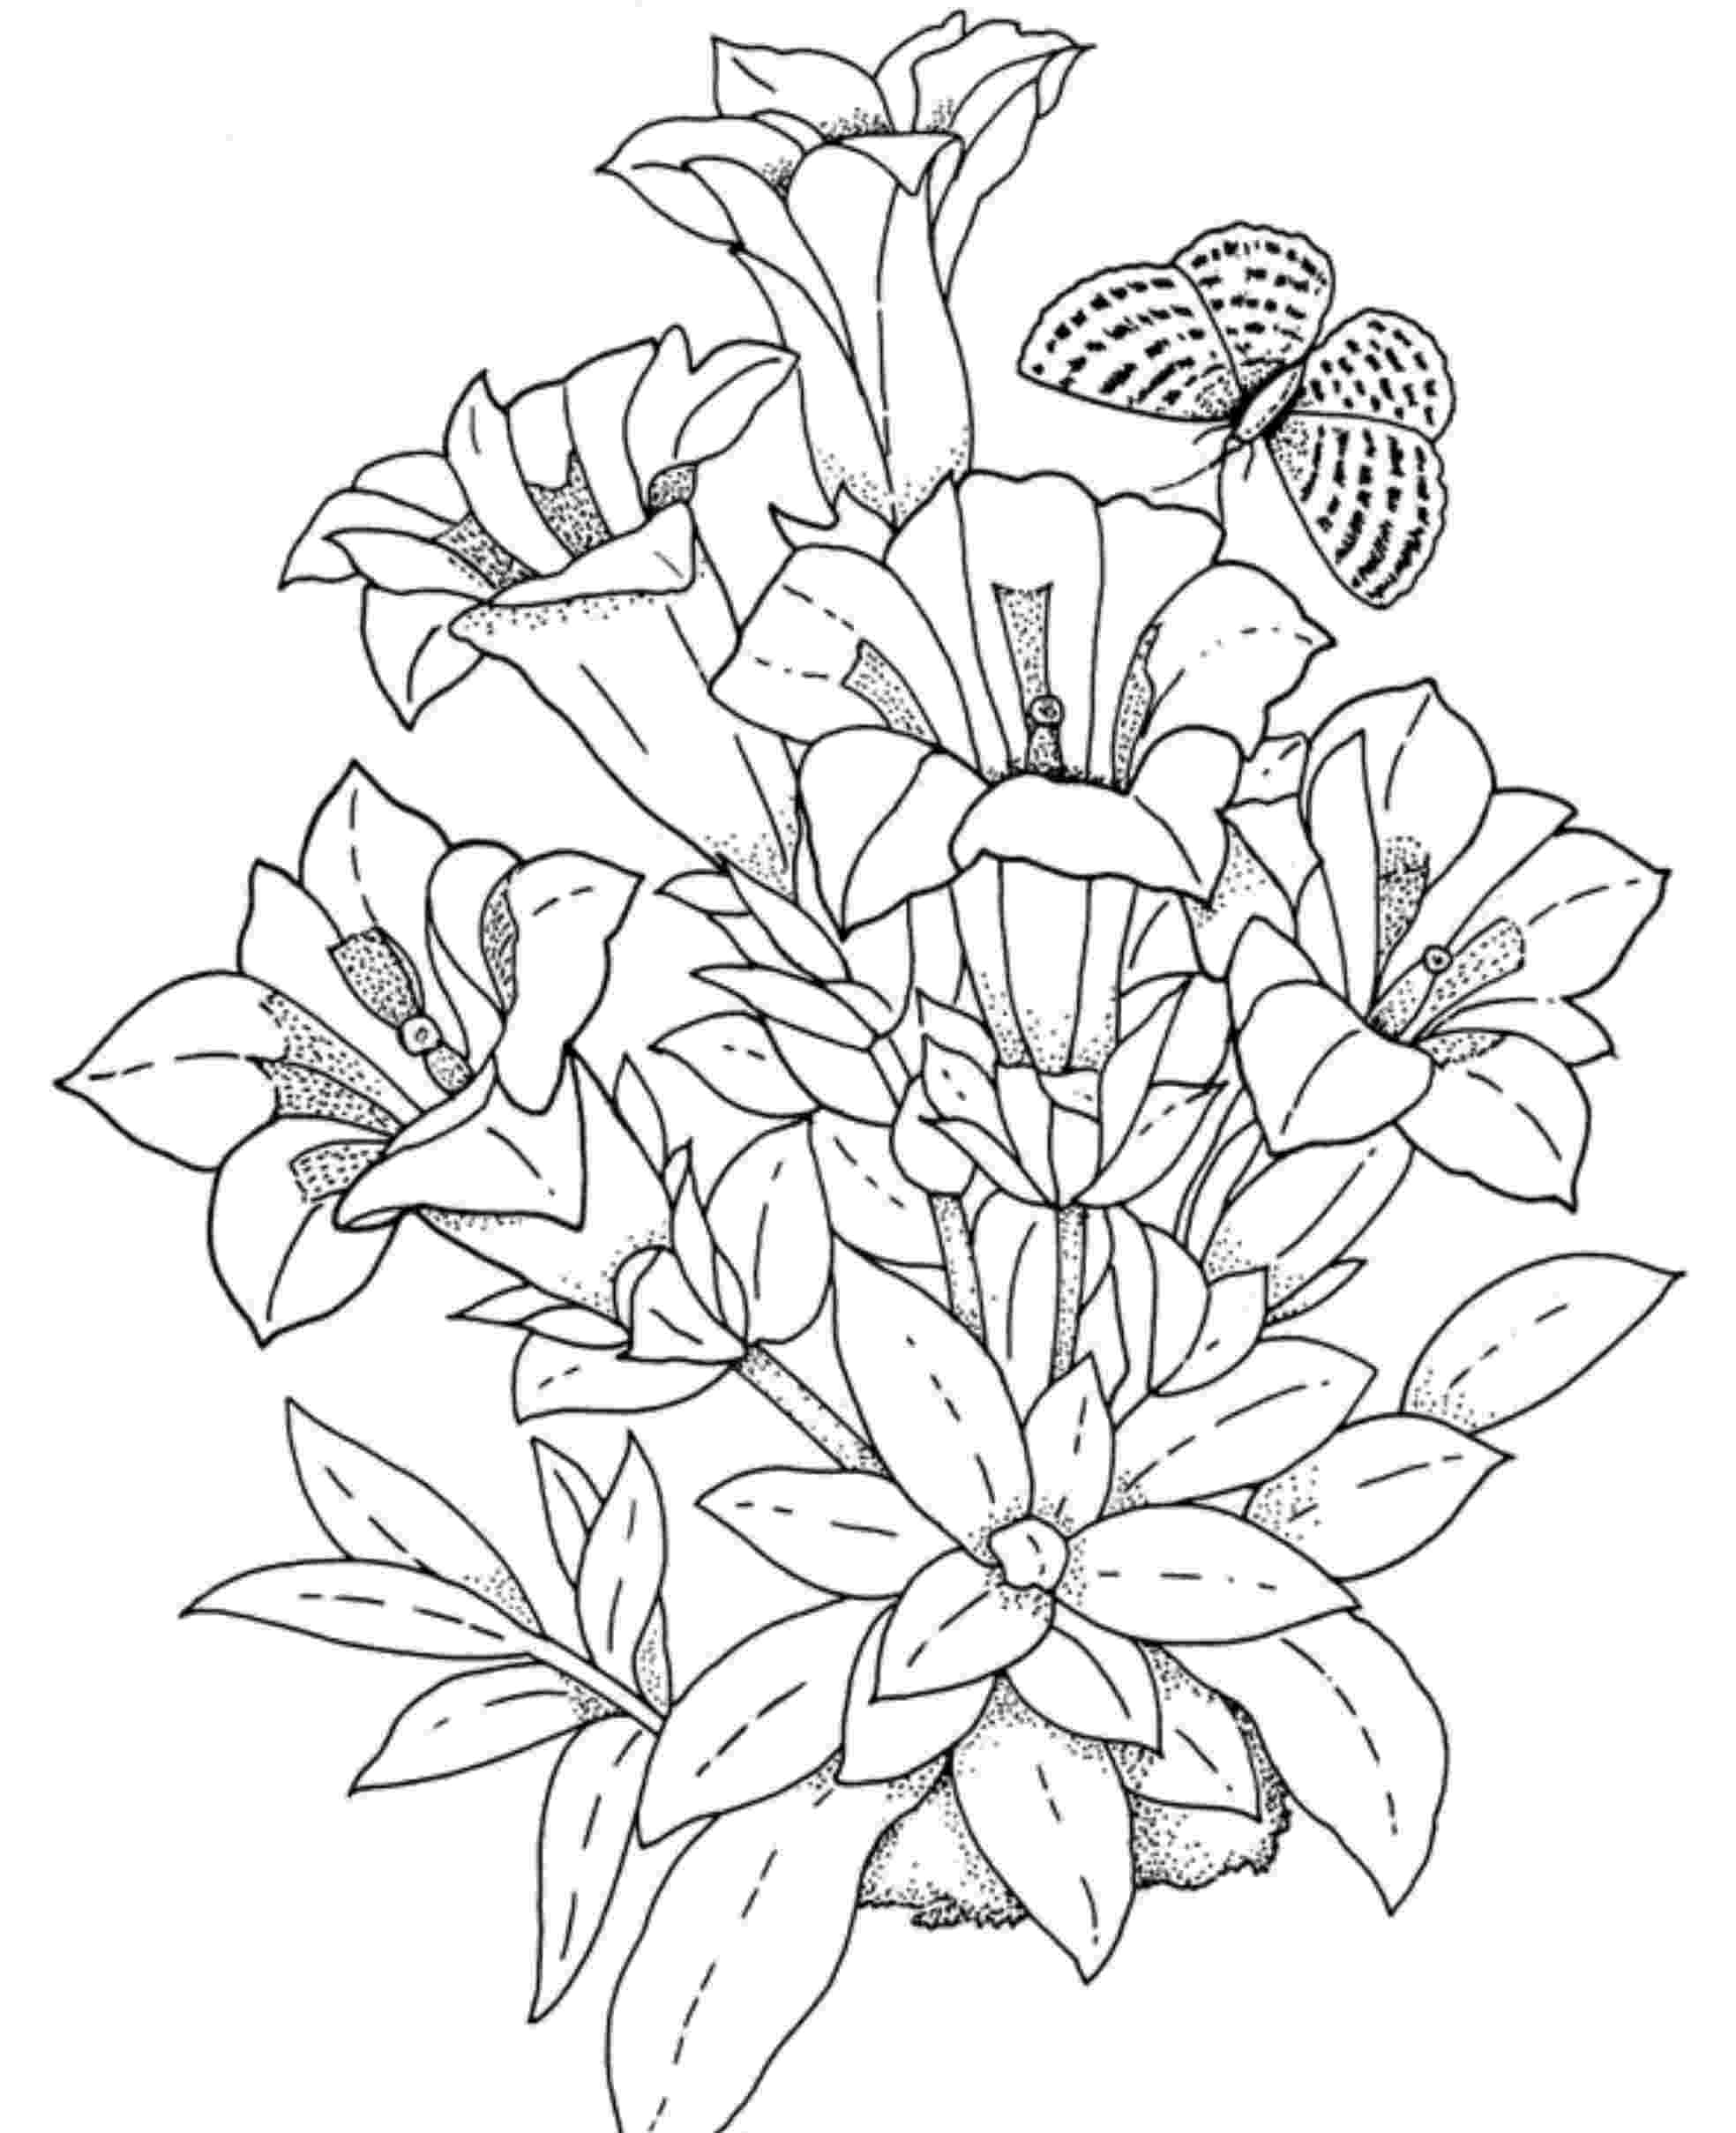 printable flower coloring pages for adults do more of what makes you happy coloring page for kids adults flower coloring for pages printable